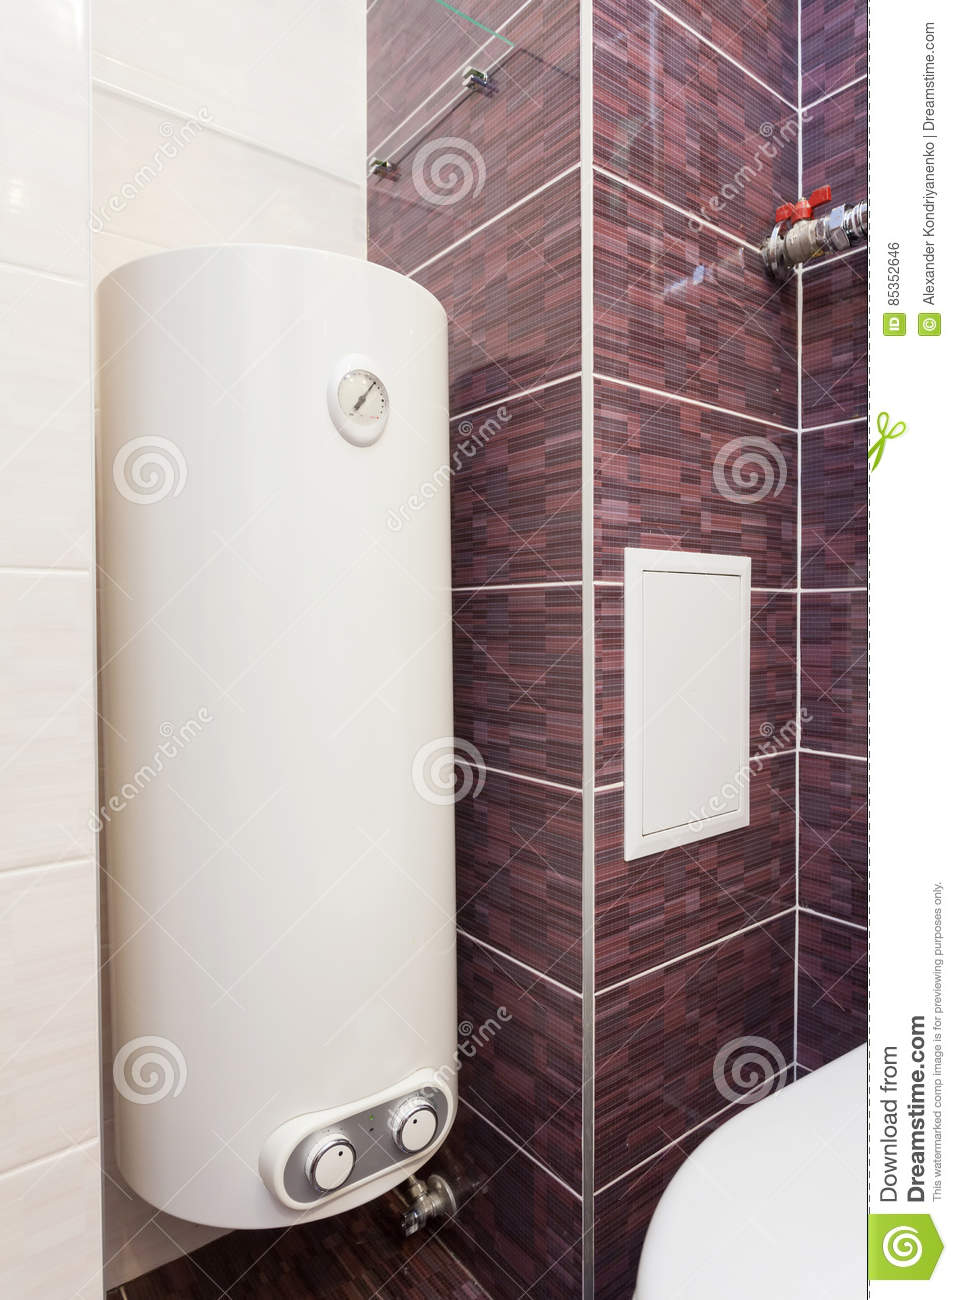 Boiler Im Badezimmer Electric Boiler Wall Water Heater In Bathroom Stock Photo Image